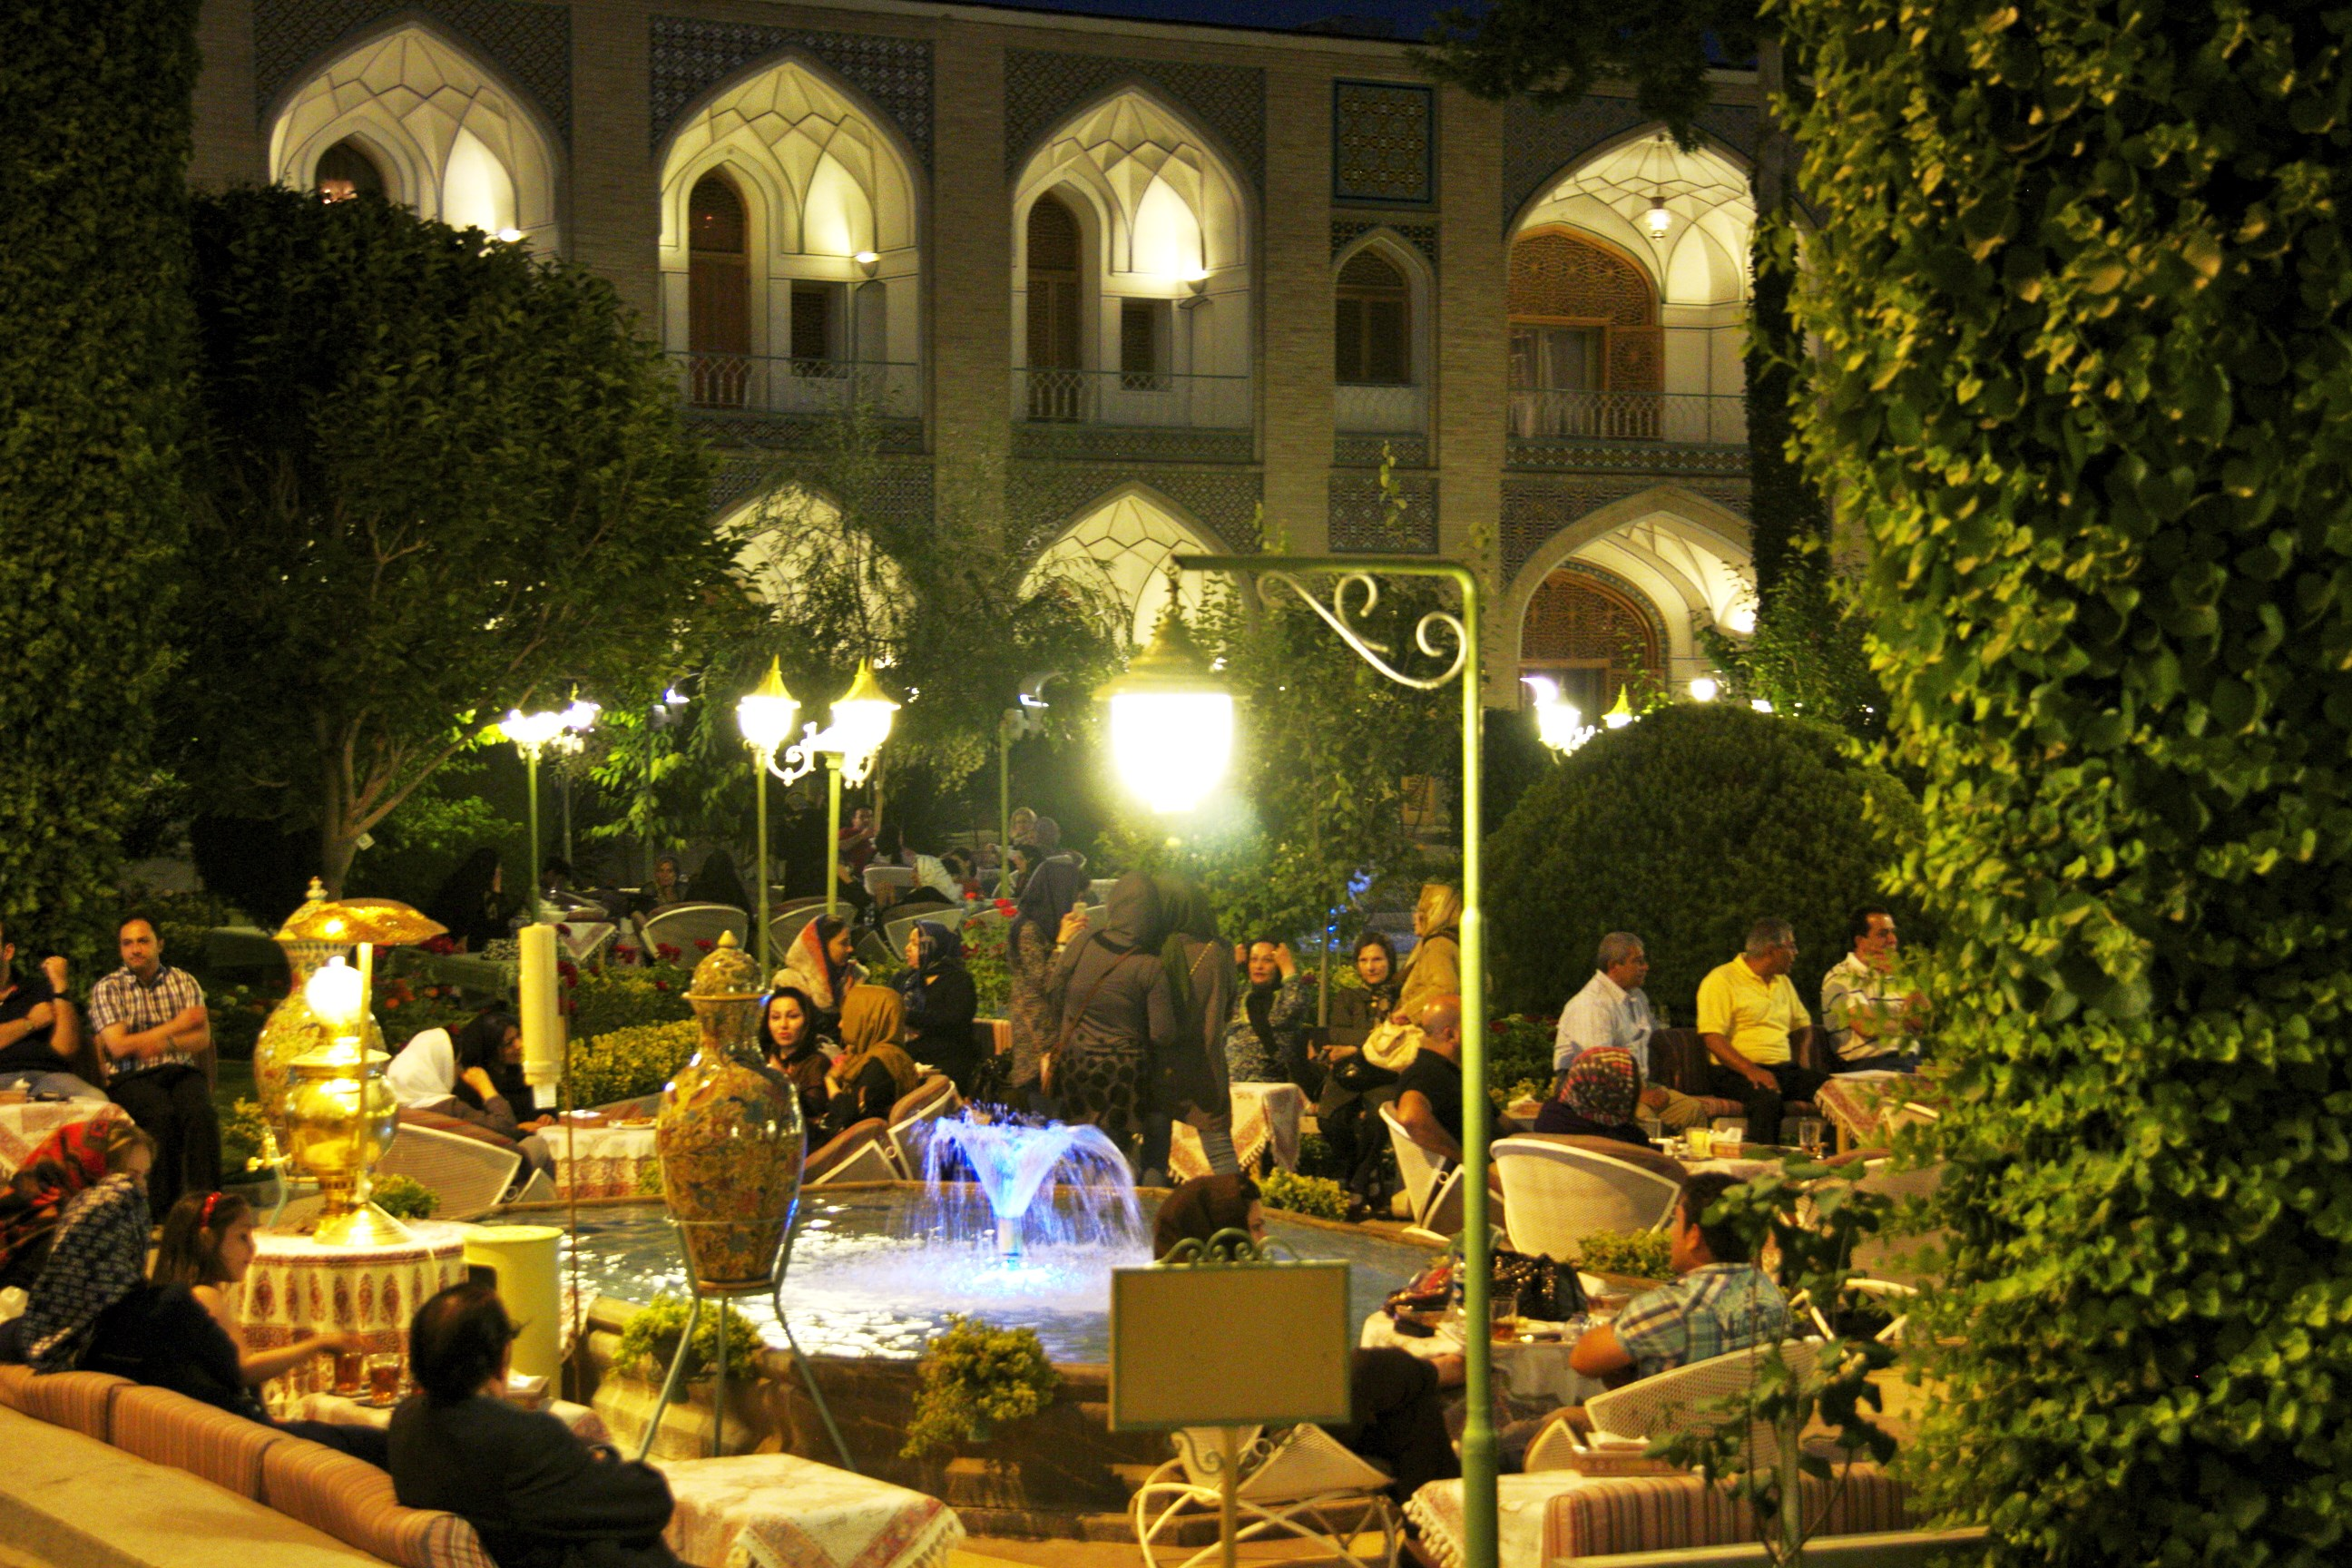 Week-end's evening at the Abbasi Hotel - Isfahan